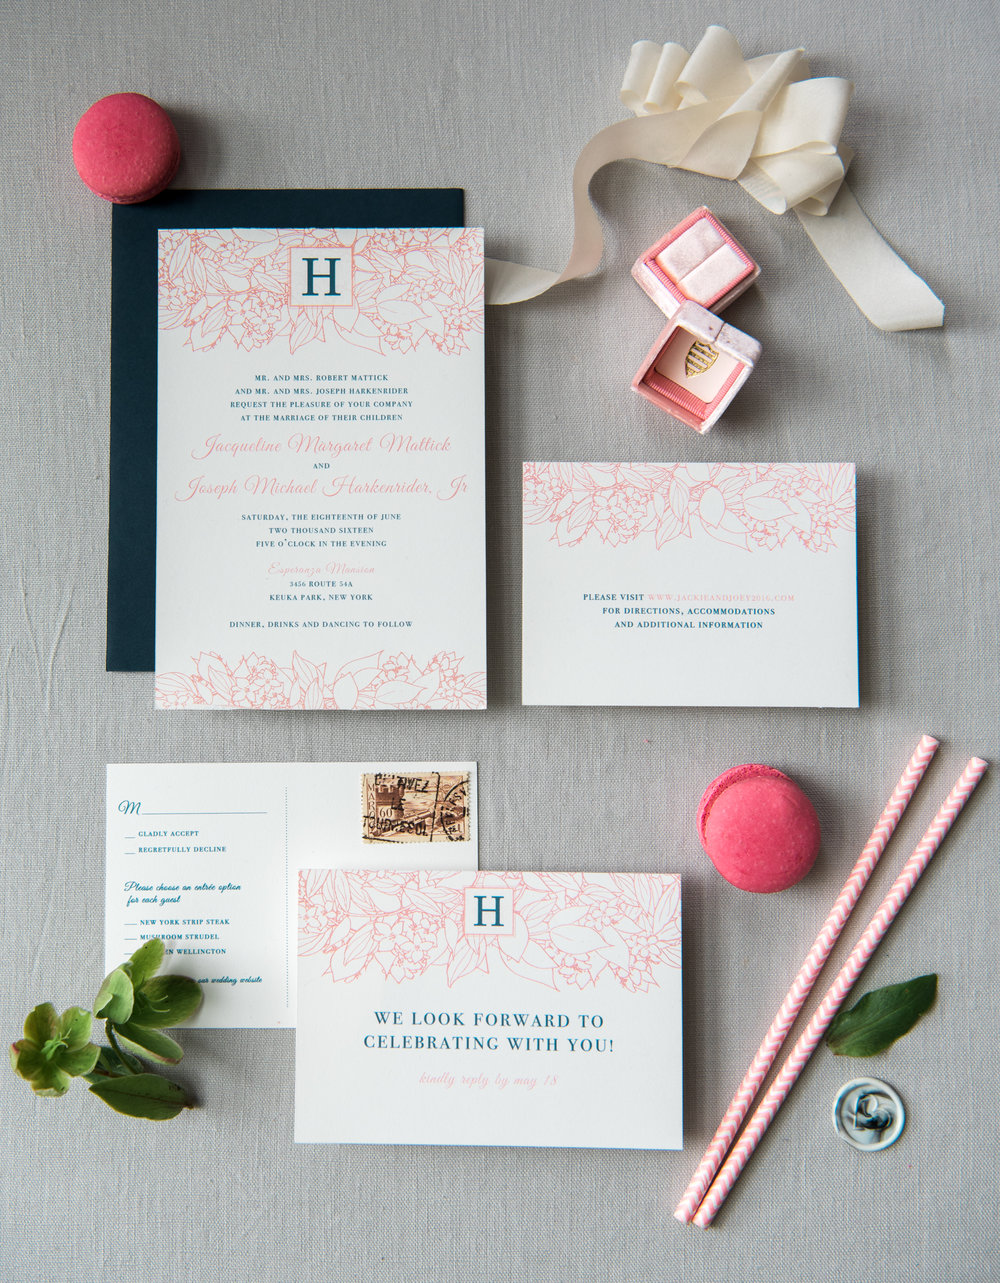 Jessica K Feiden Photography_stationery-1-2.jpg